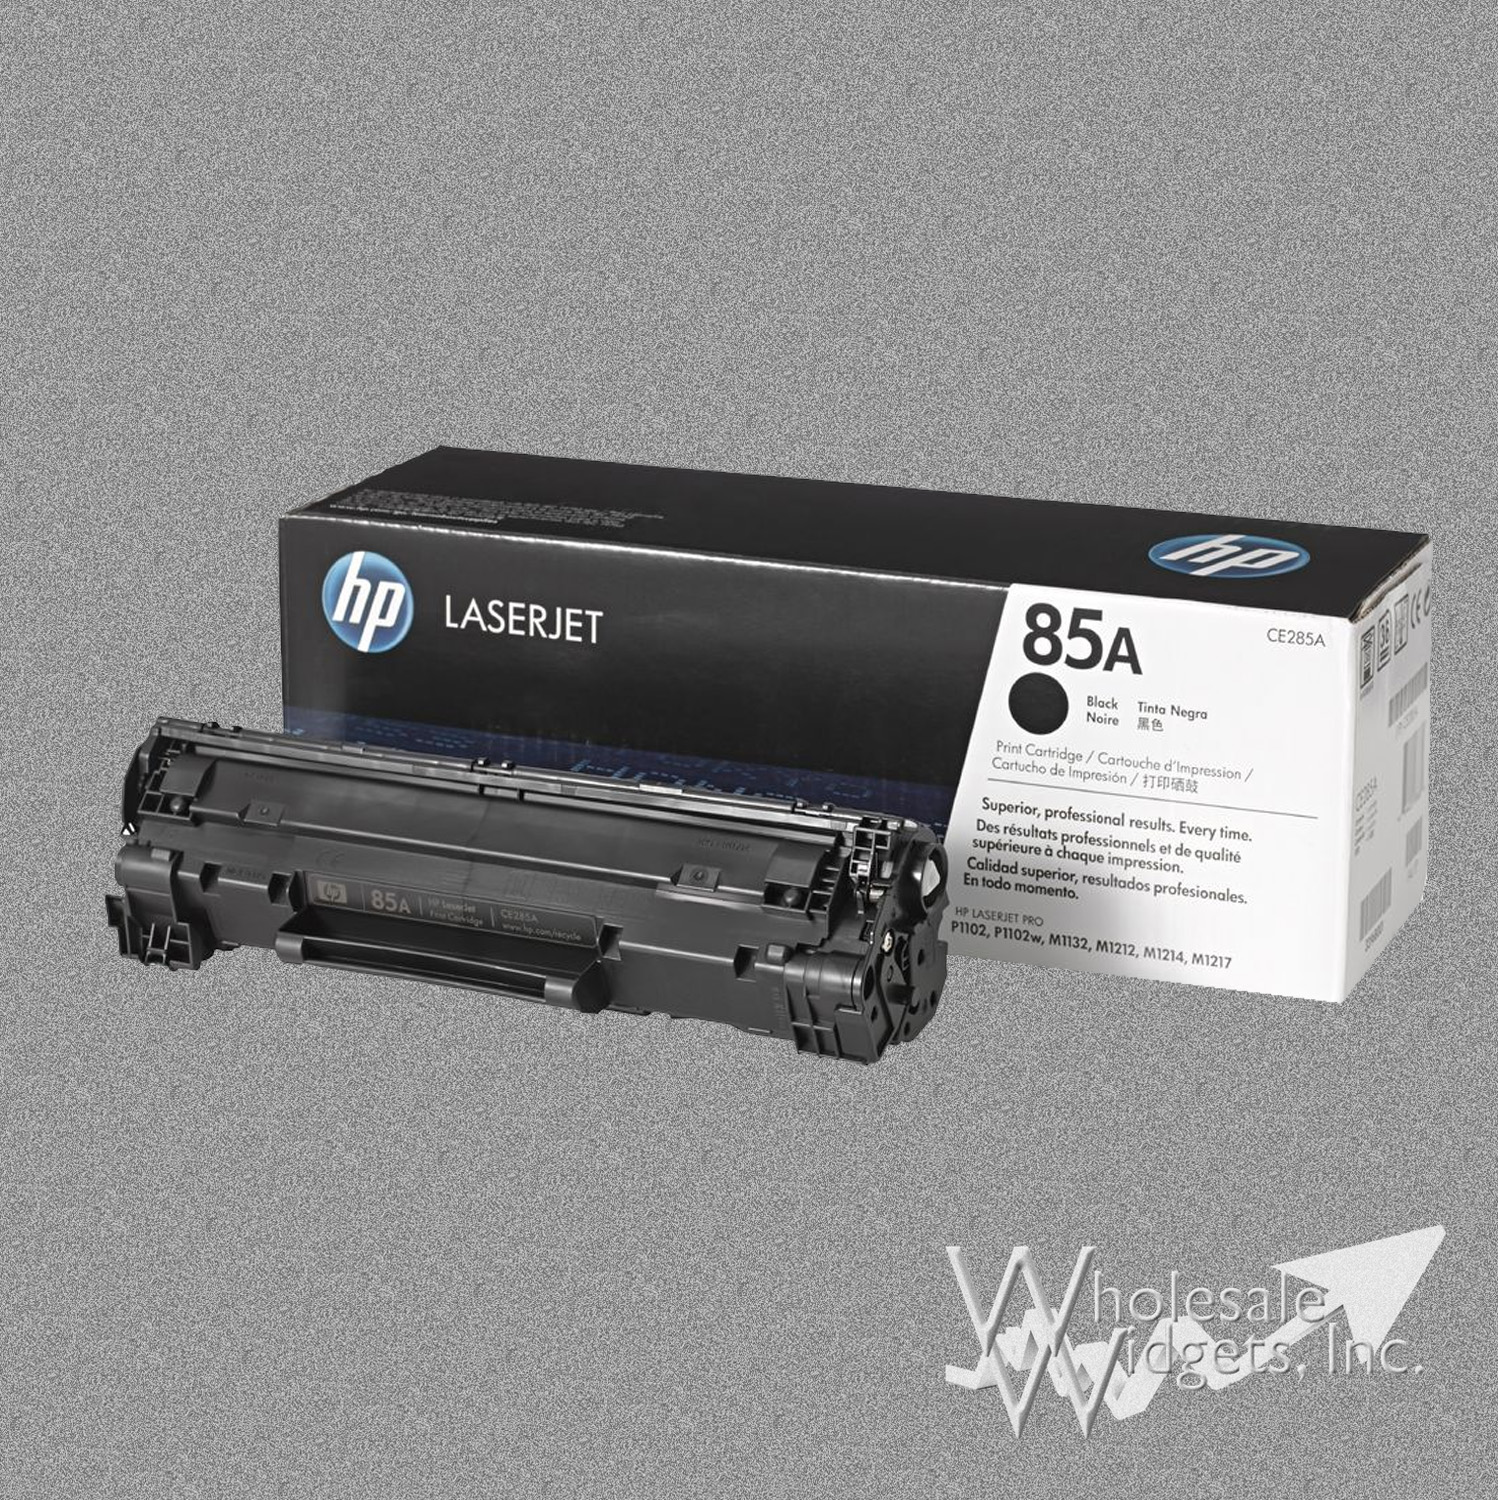 HP 85A Black Toner For Use In HP 85A Black Toner LaserJet